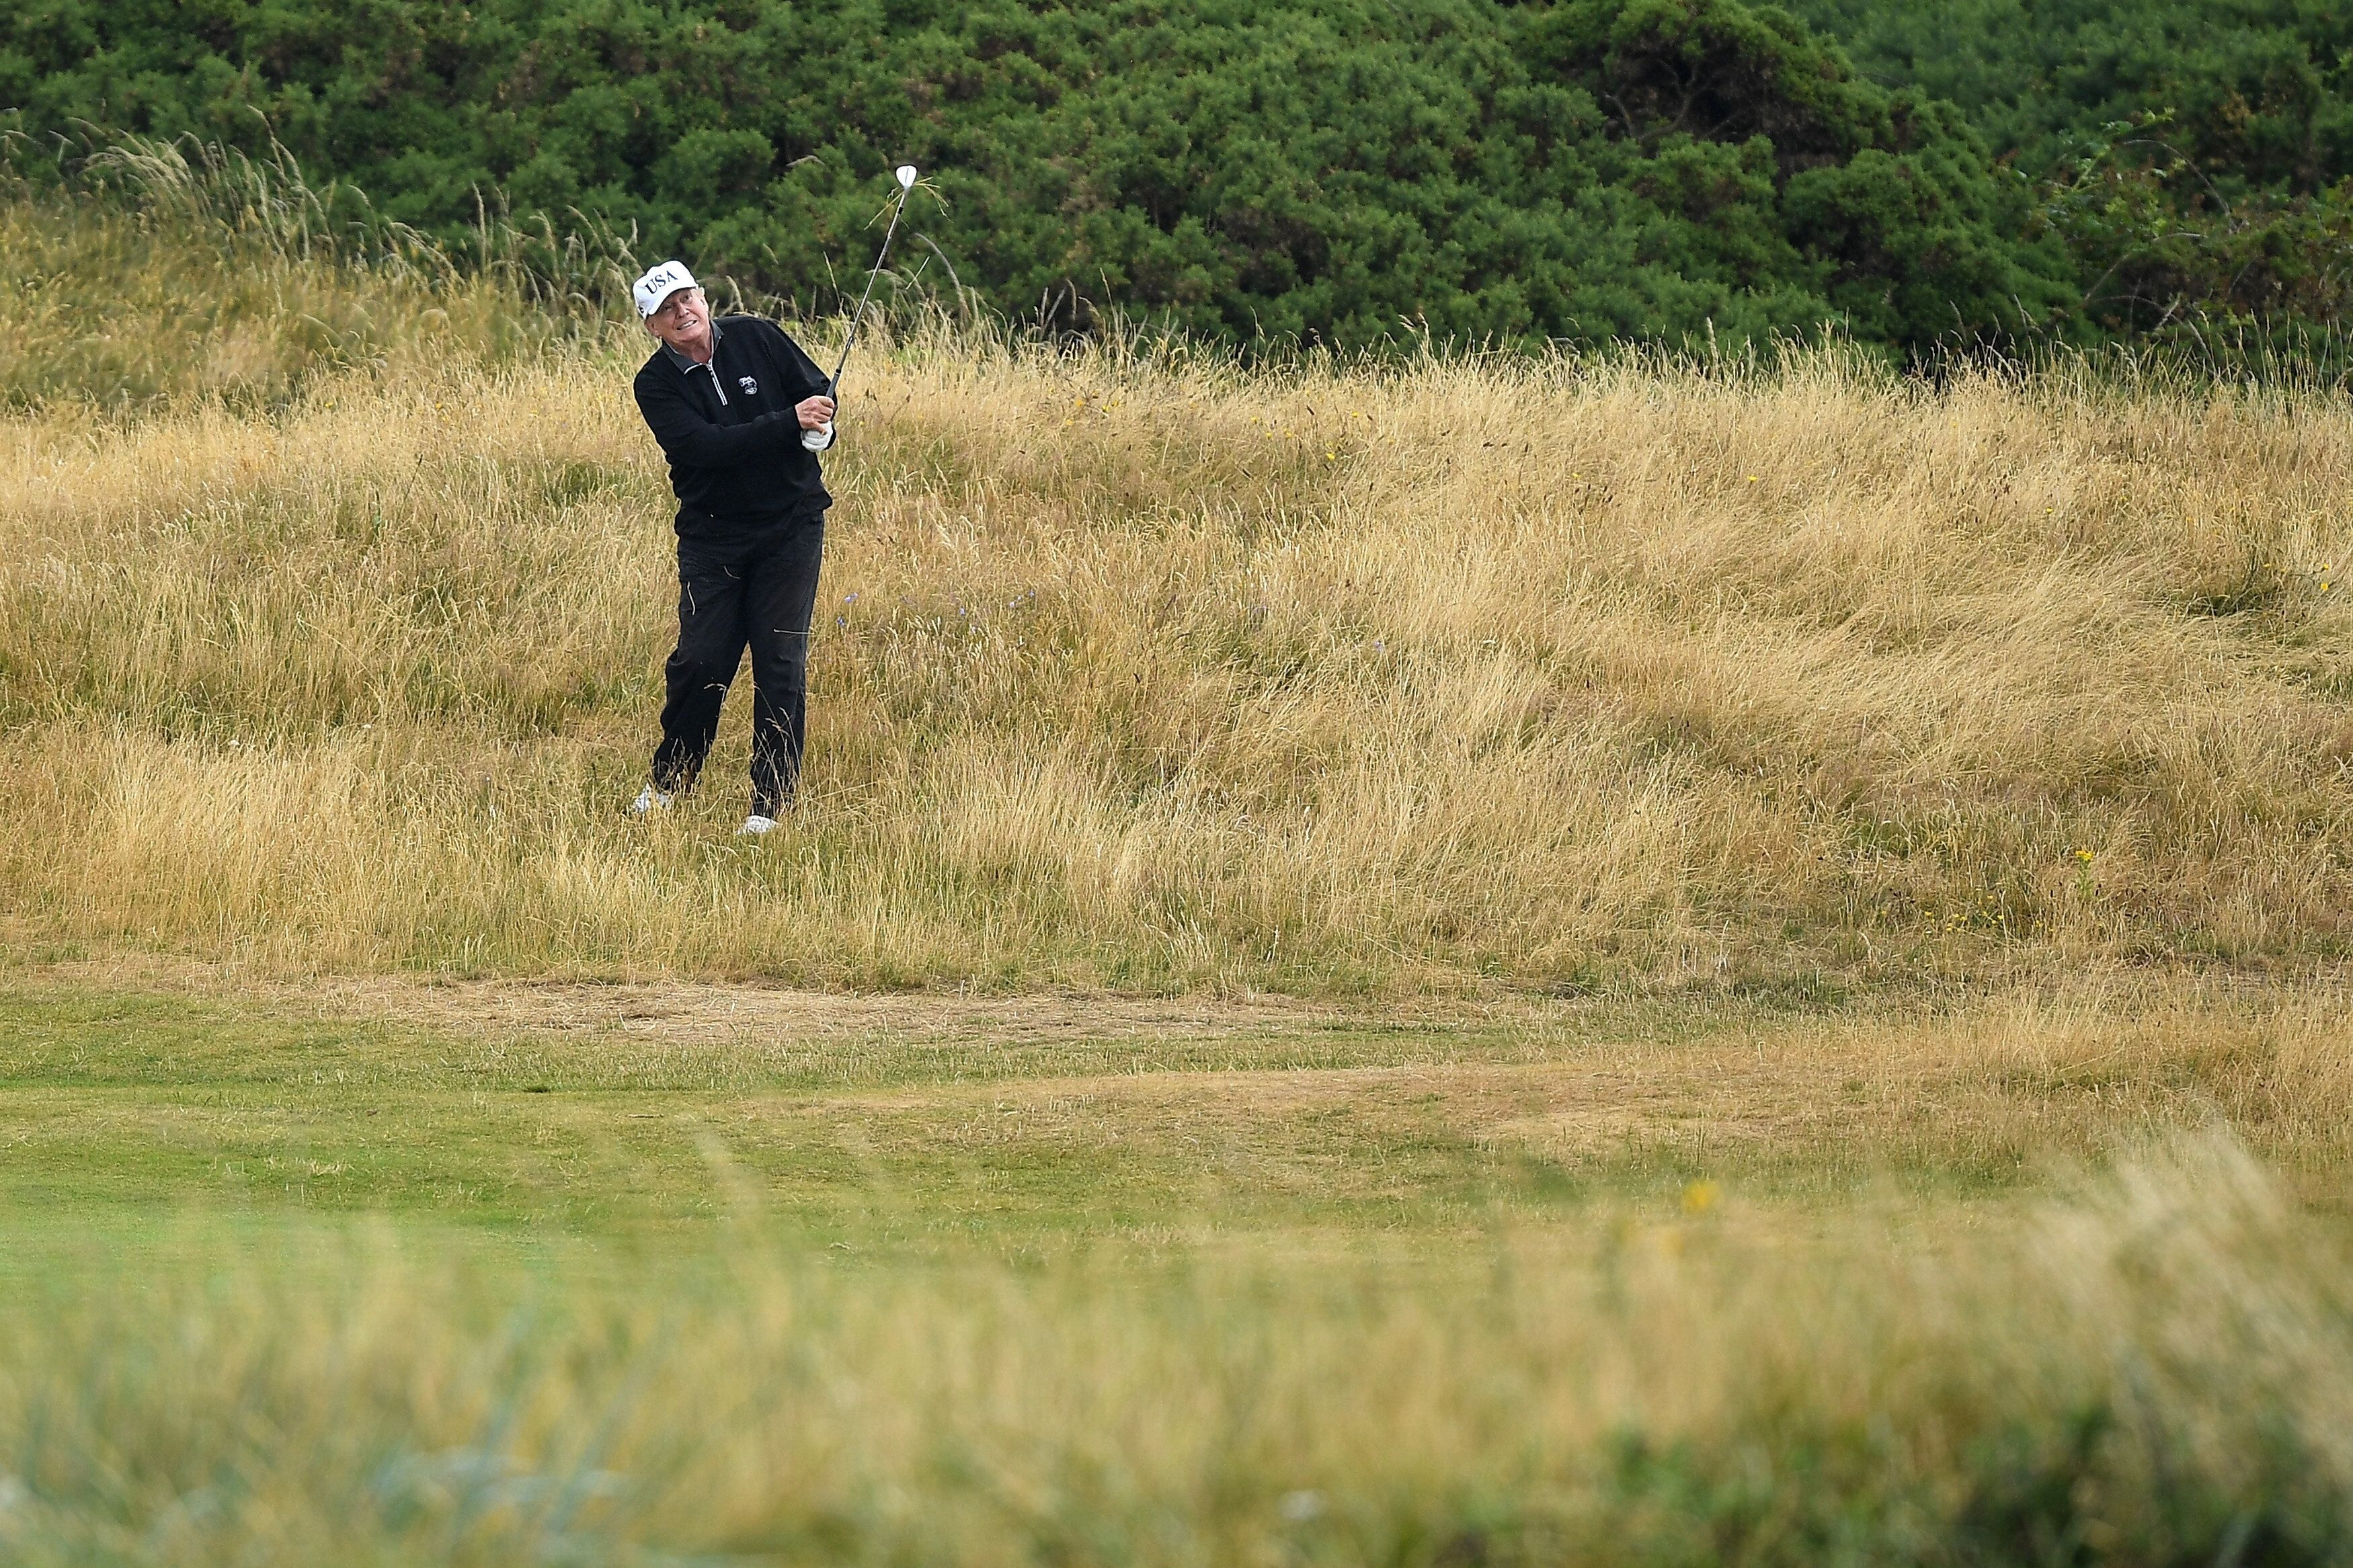 President Donald J. Trump has spent a total of 61 days on his Florida courses, 58 at Bedminster in New Jersey, one at Trump National Golf Club in Los Angeles and two at Trump Turnberry. — Photograph: Leon Neal/via Getty Images.